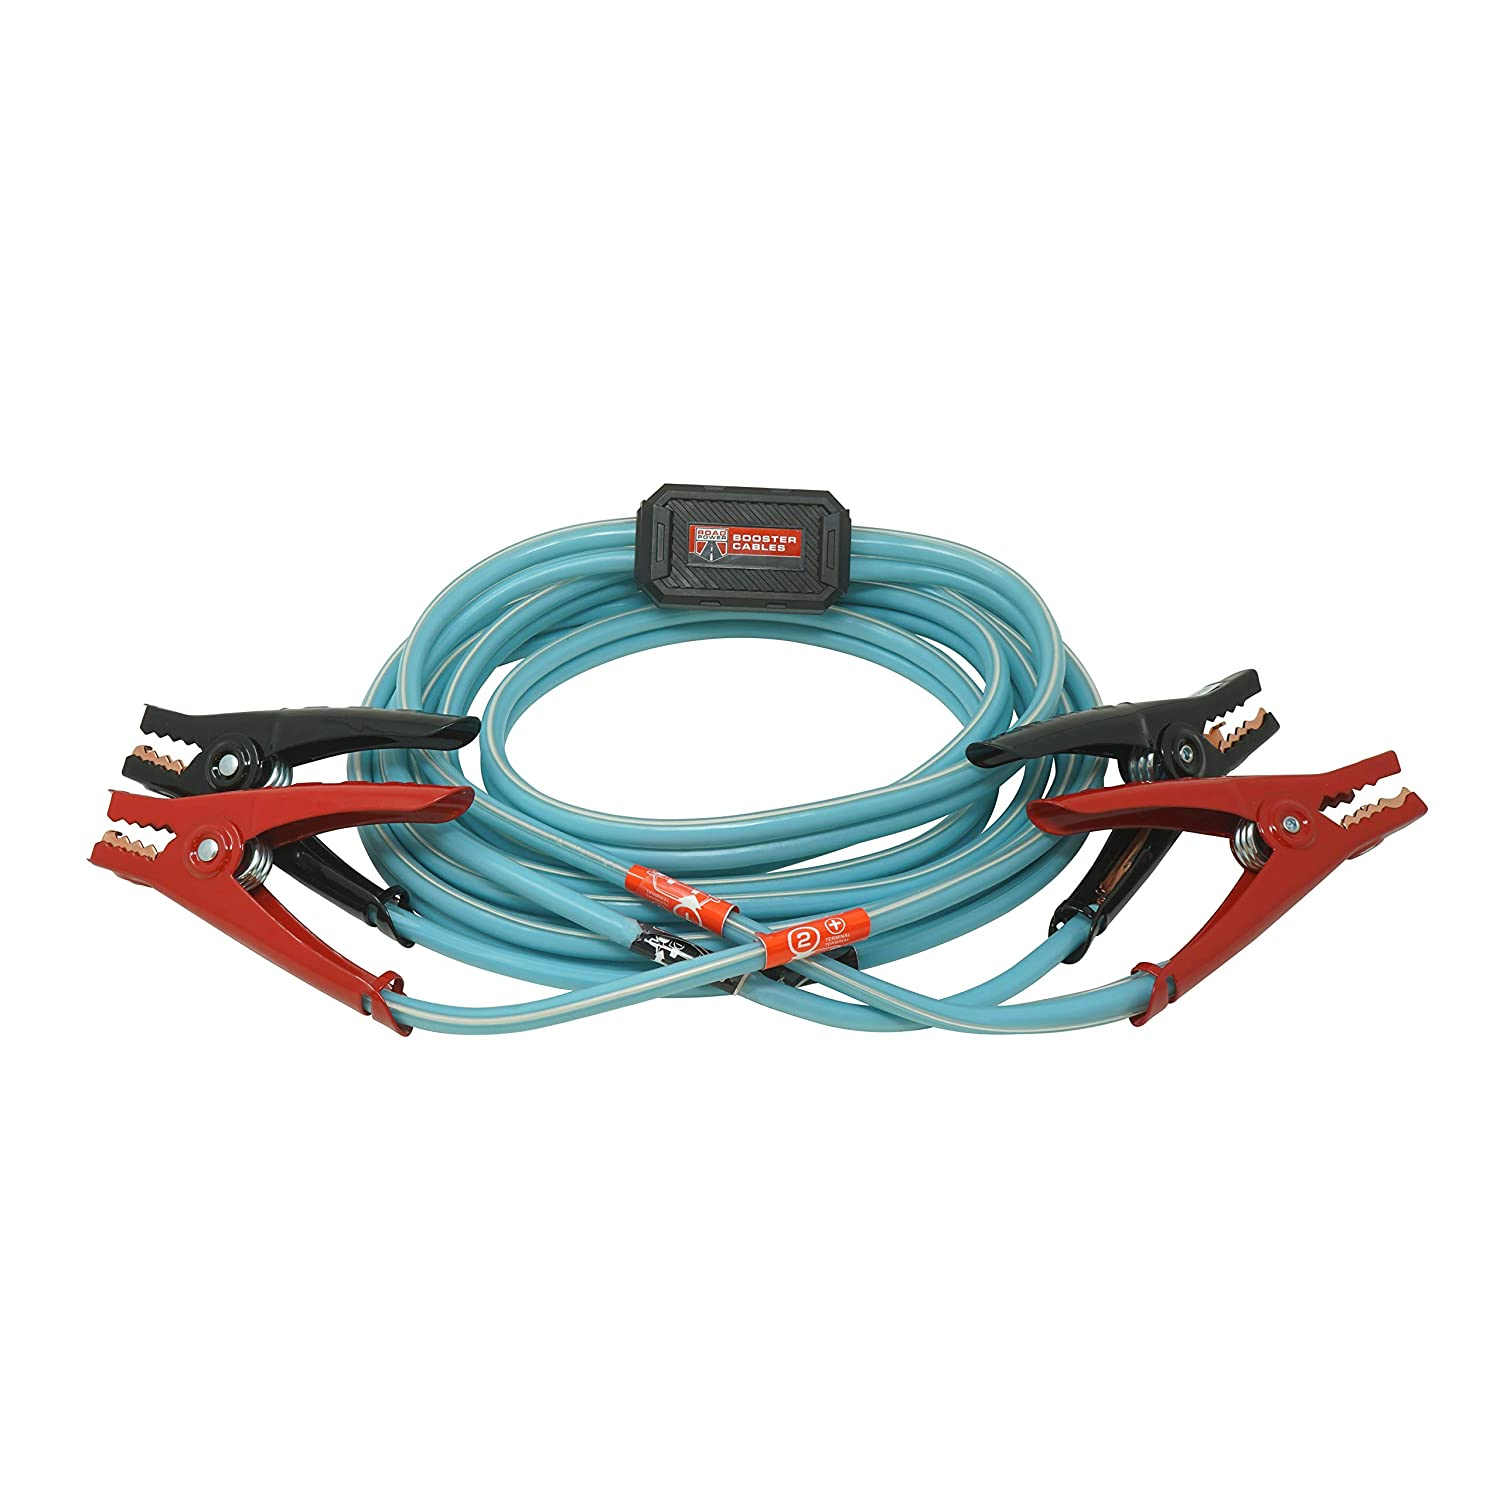 Road Power 84696616 6 Gauge 16 Blue Booster Cables with Exclusive Road Glow Technology